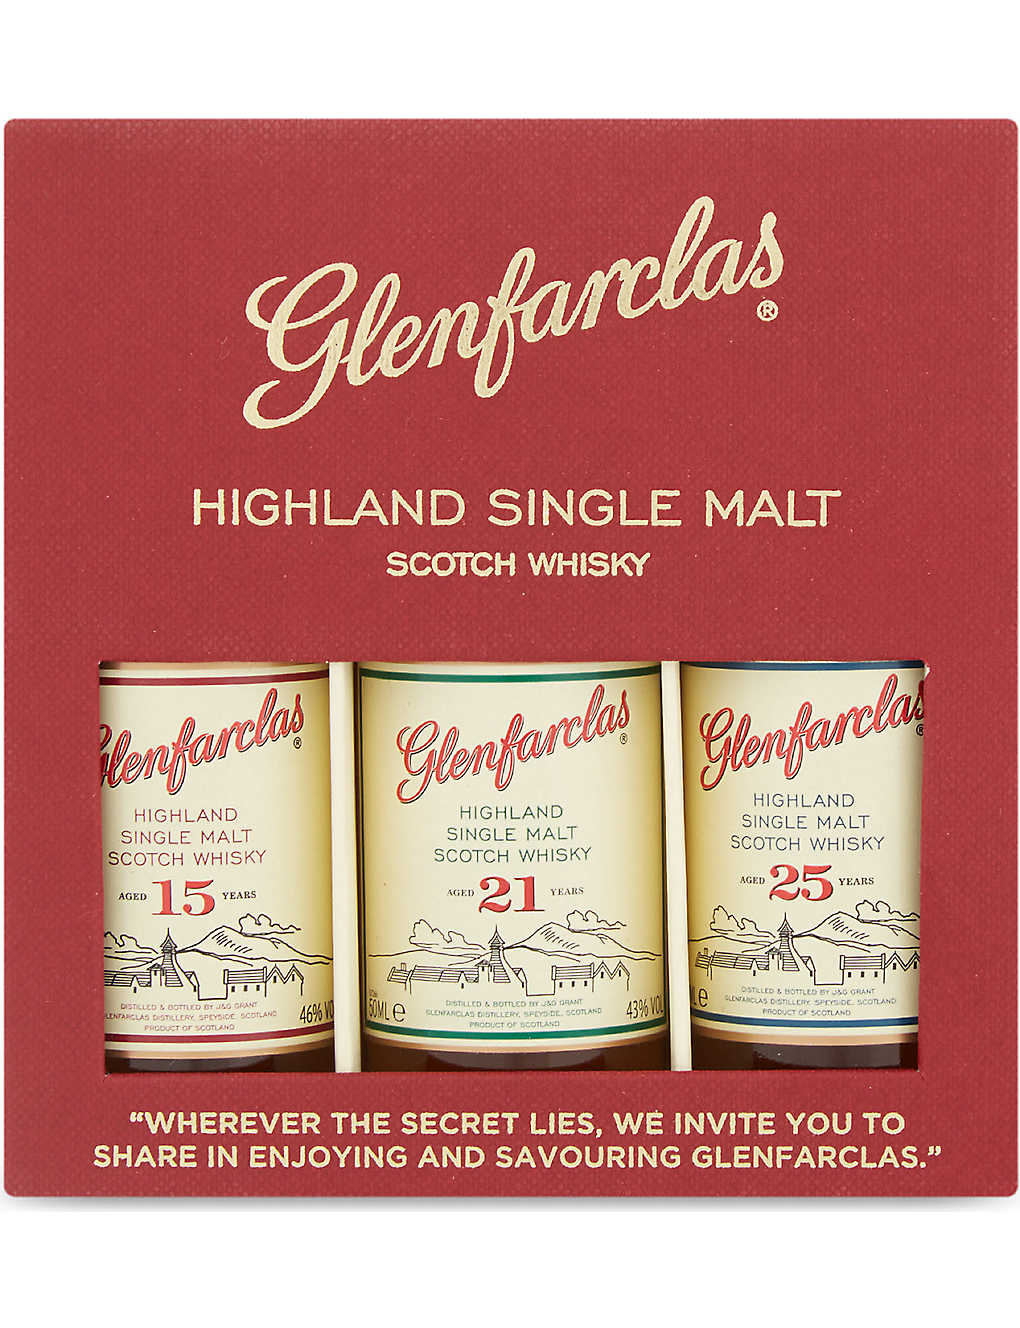 GLENFARCLAS: Highland single malt Scotch whisky box 3x50ml